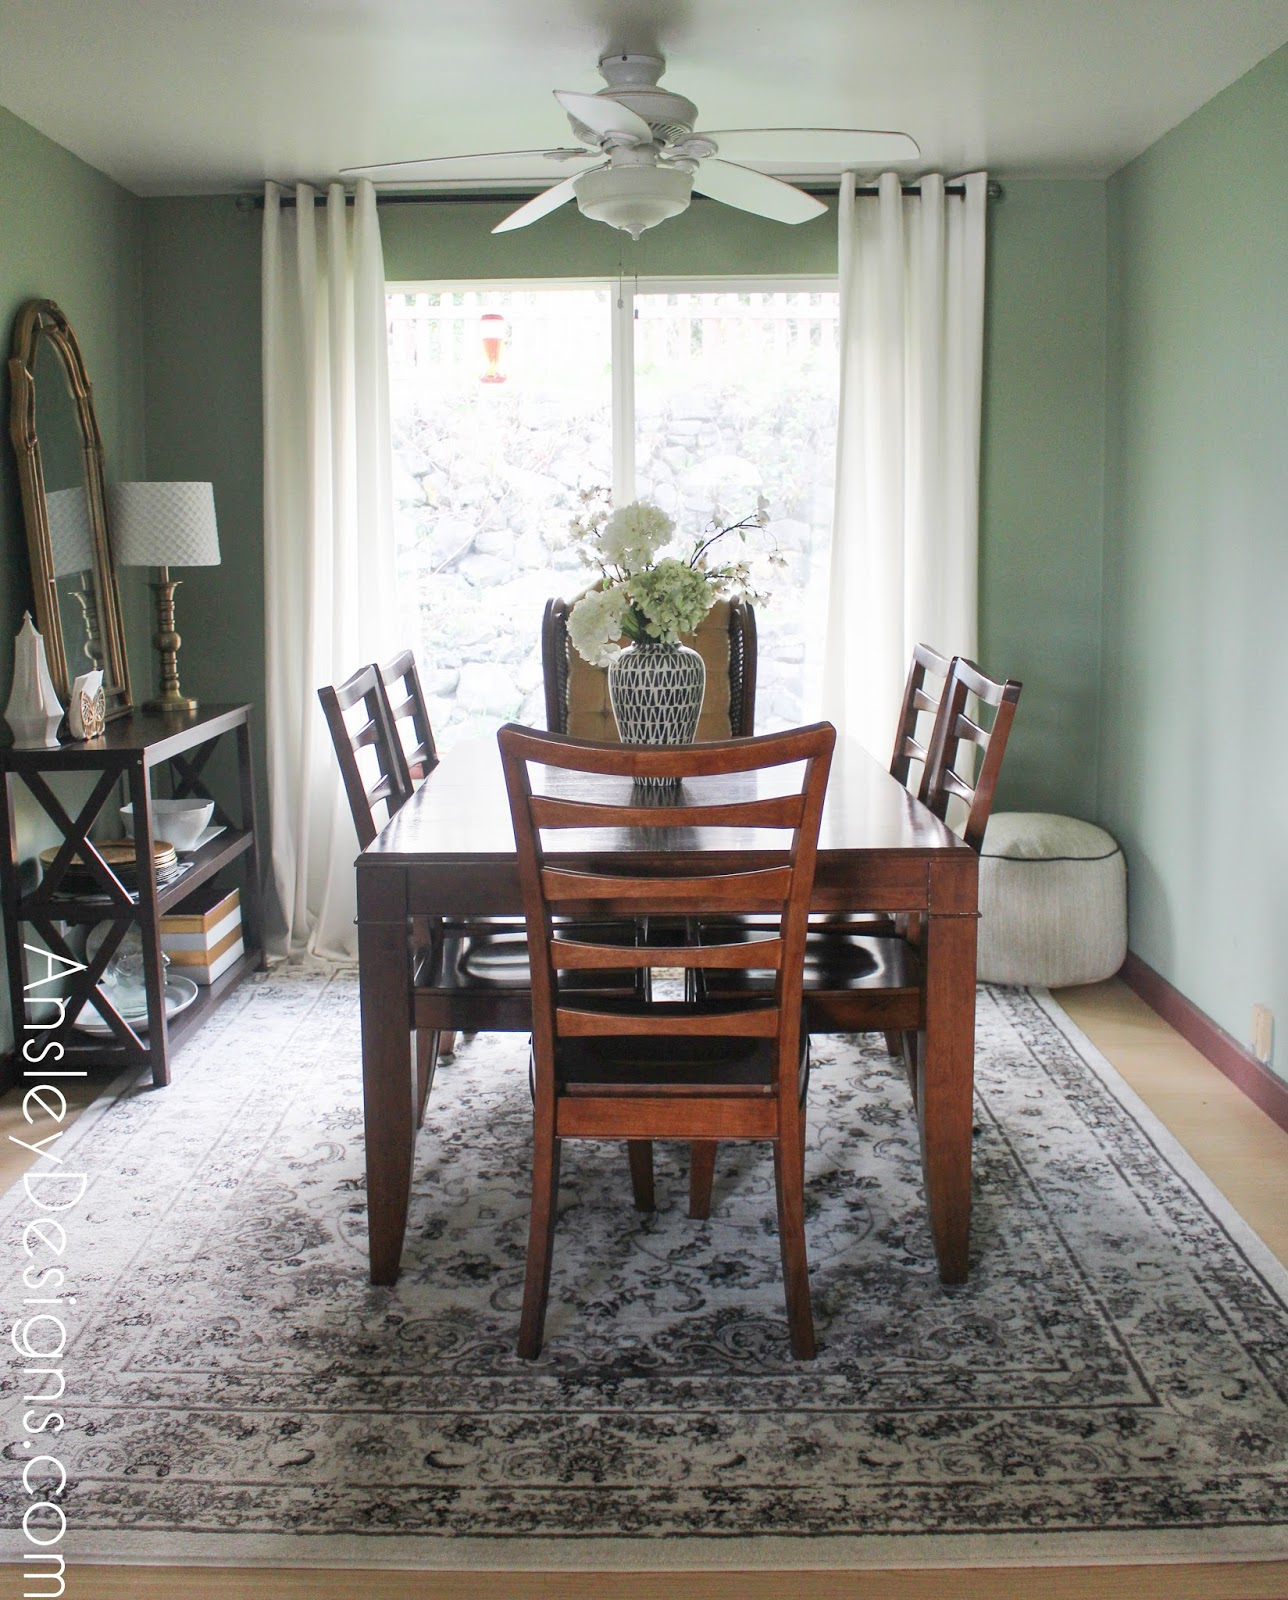 Ansley Designs: Dining Room in Progress